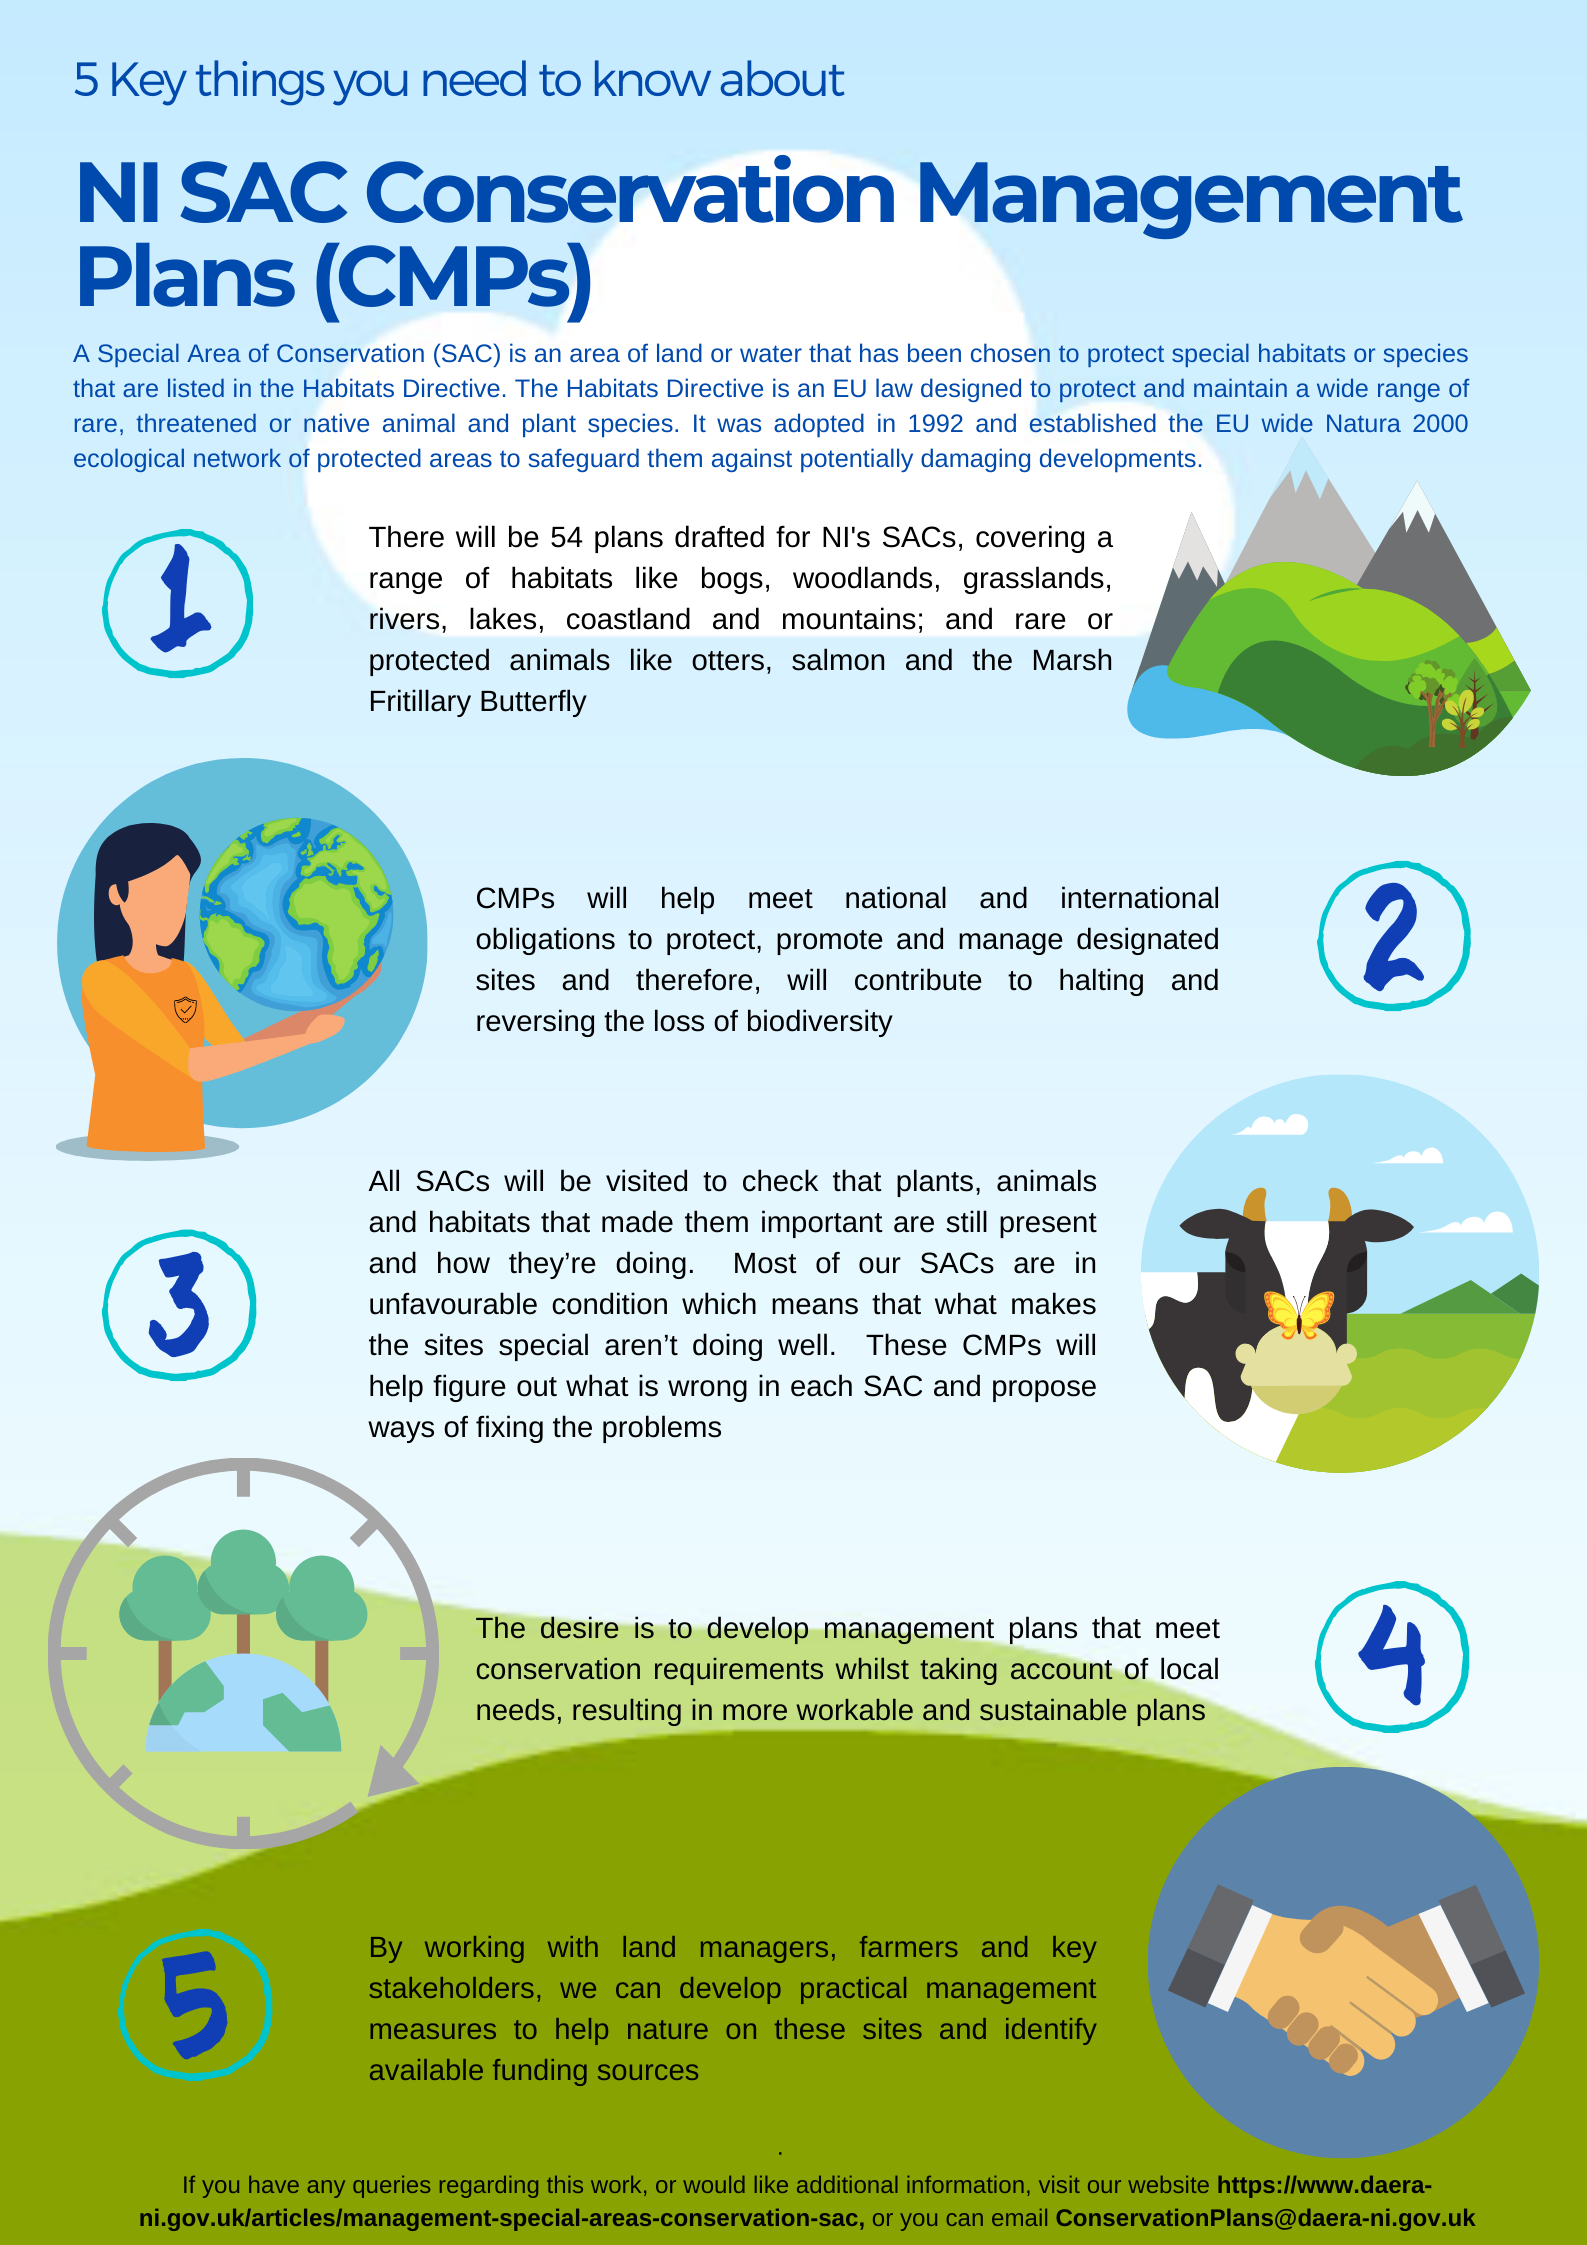 5 key things you need to know about Conservation Management Plans